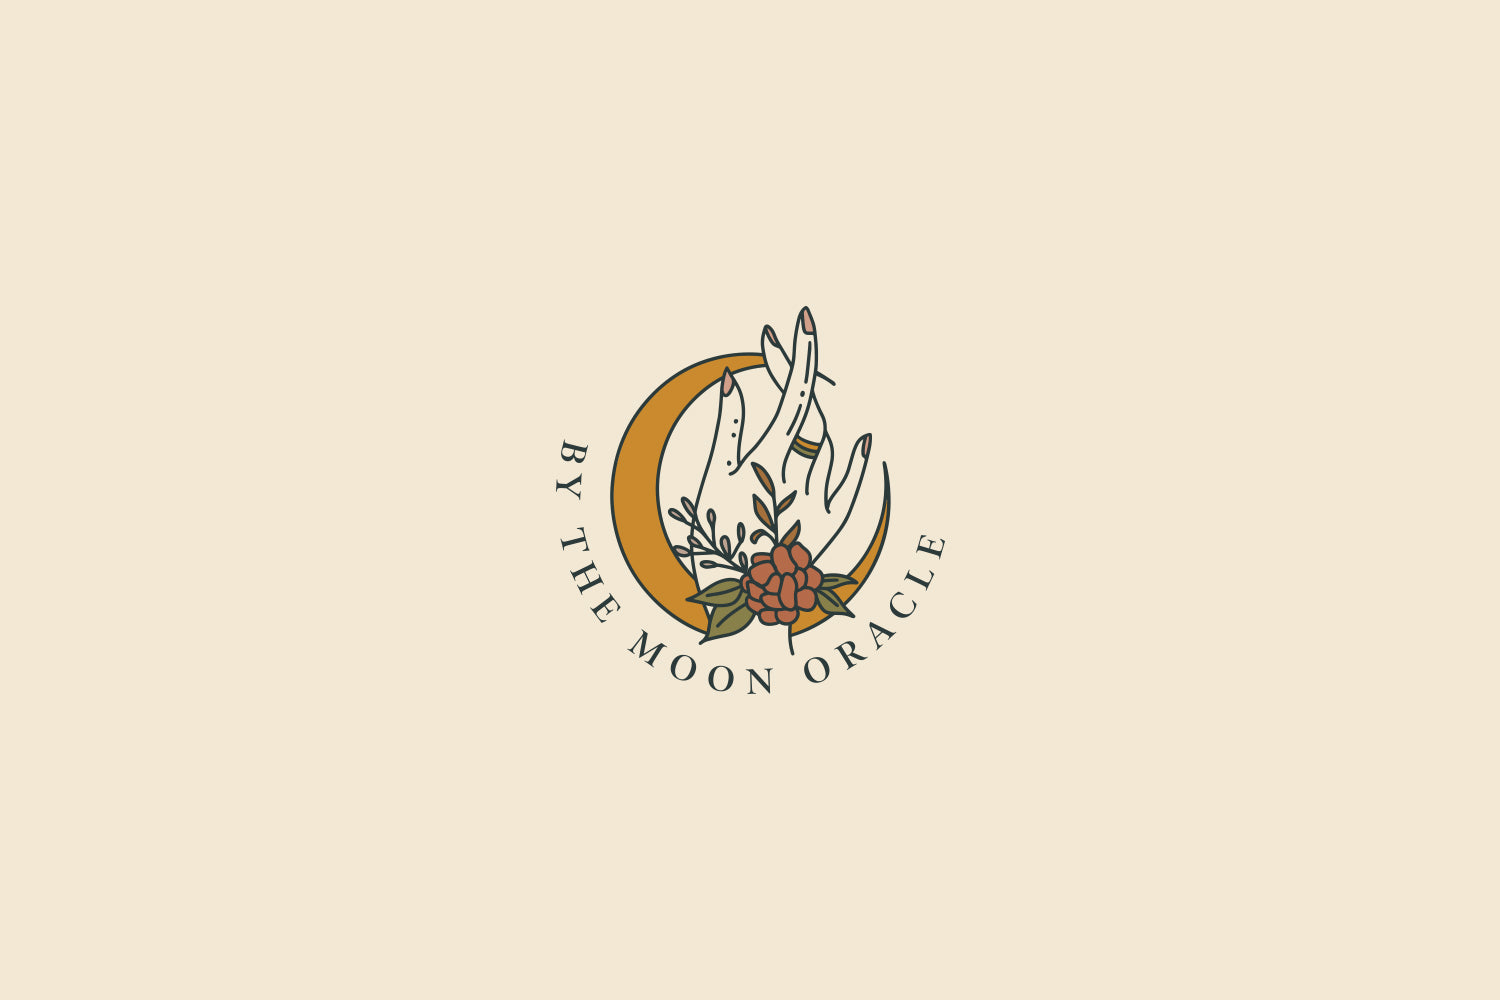 julabrand-by-the-moon-oracle-branding-print-collateral